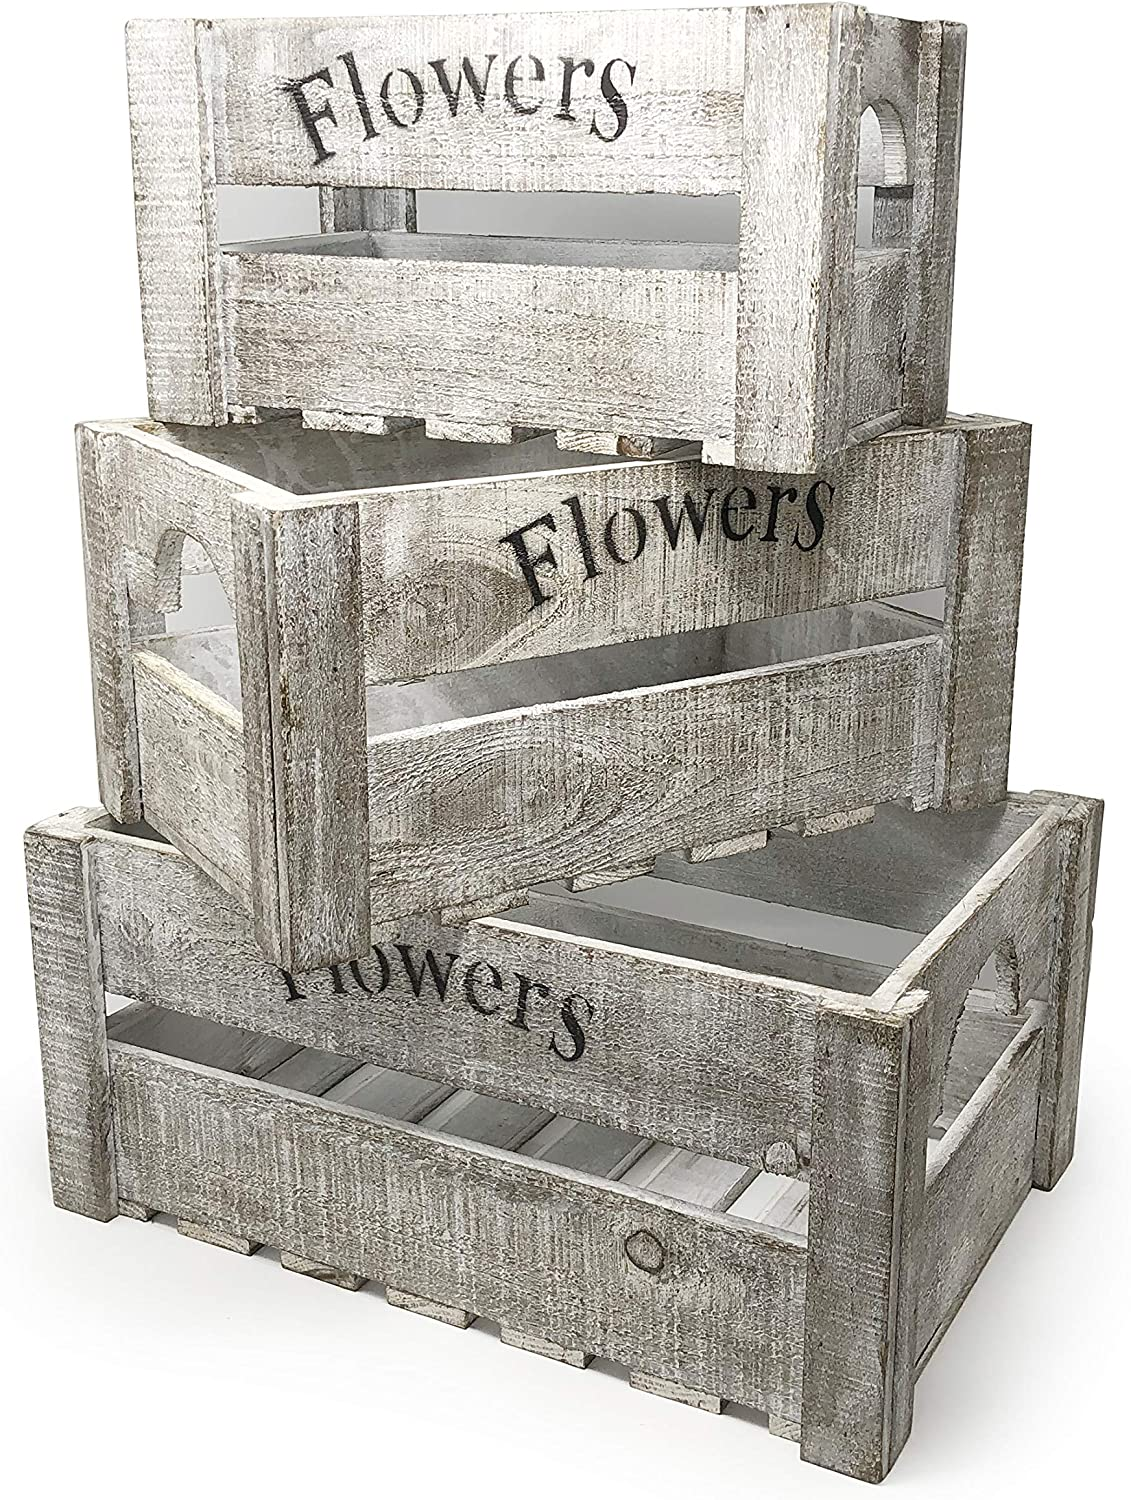 allgala 3-PC Set Wooden Boxes Planter Trough for Flower pots - Indoor Outdoor Decoration - Storage Display Boxes